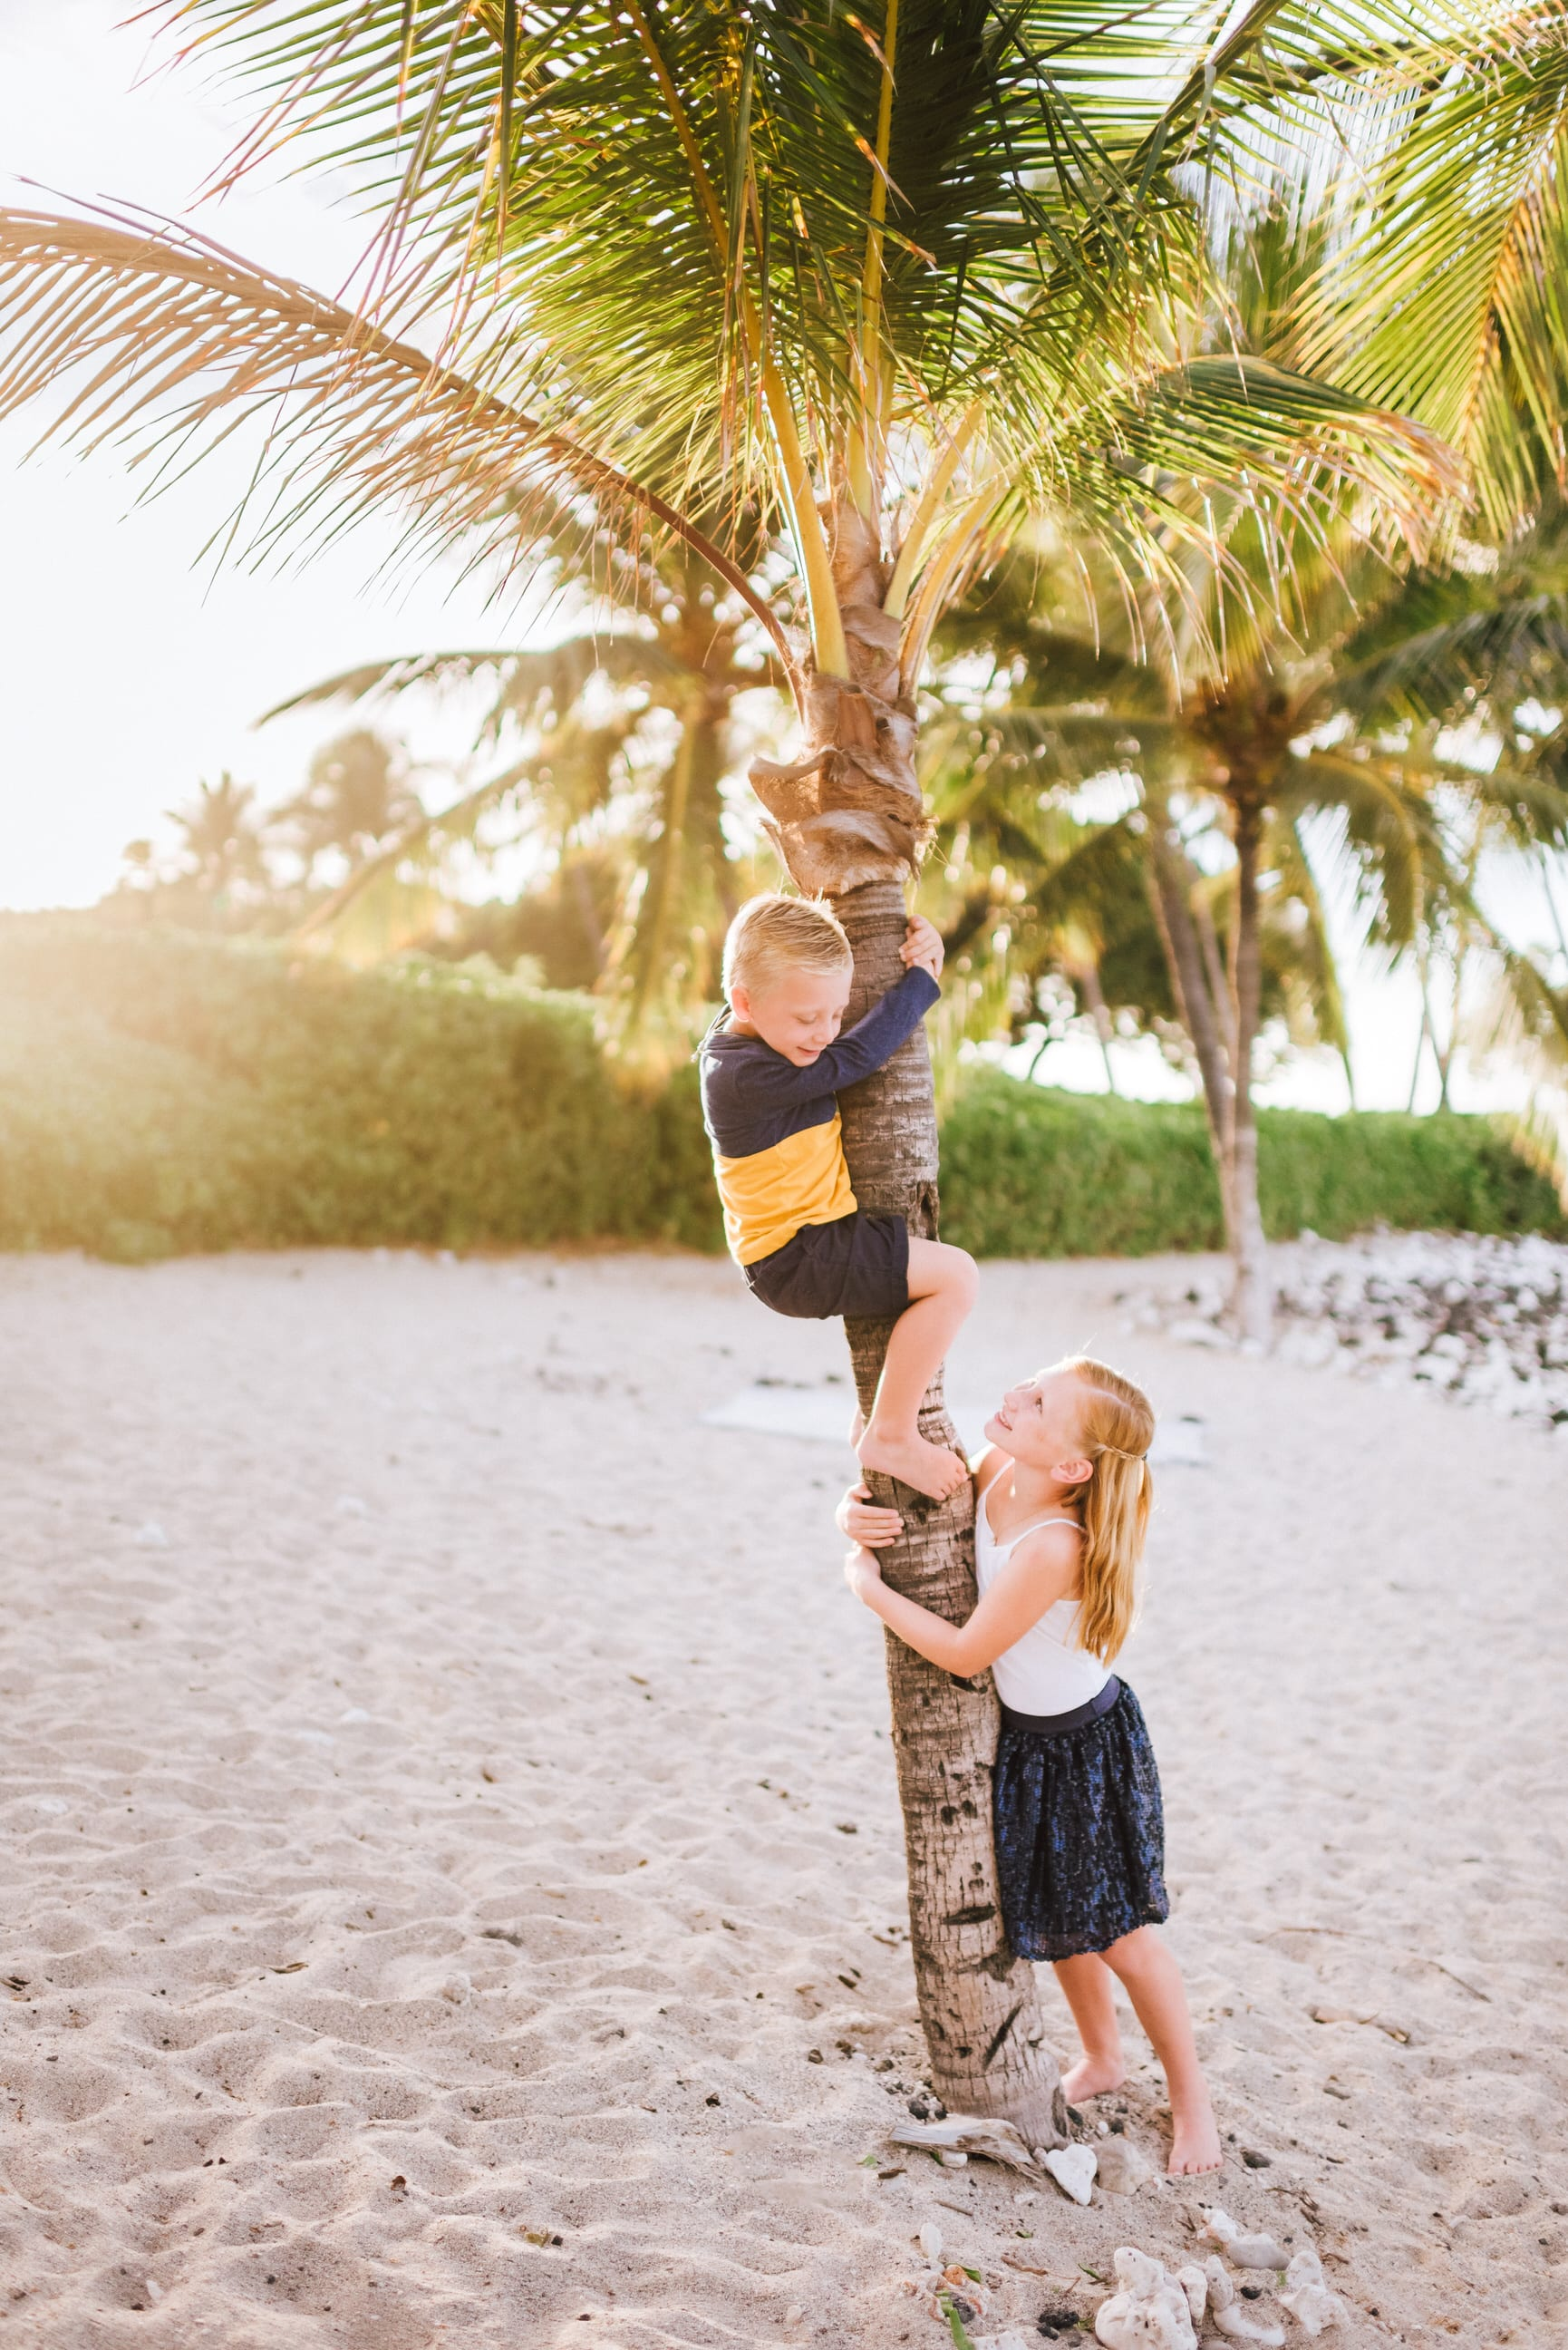 Kona-Photographer-Hawaii-Family-Photos-11.jpg